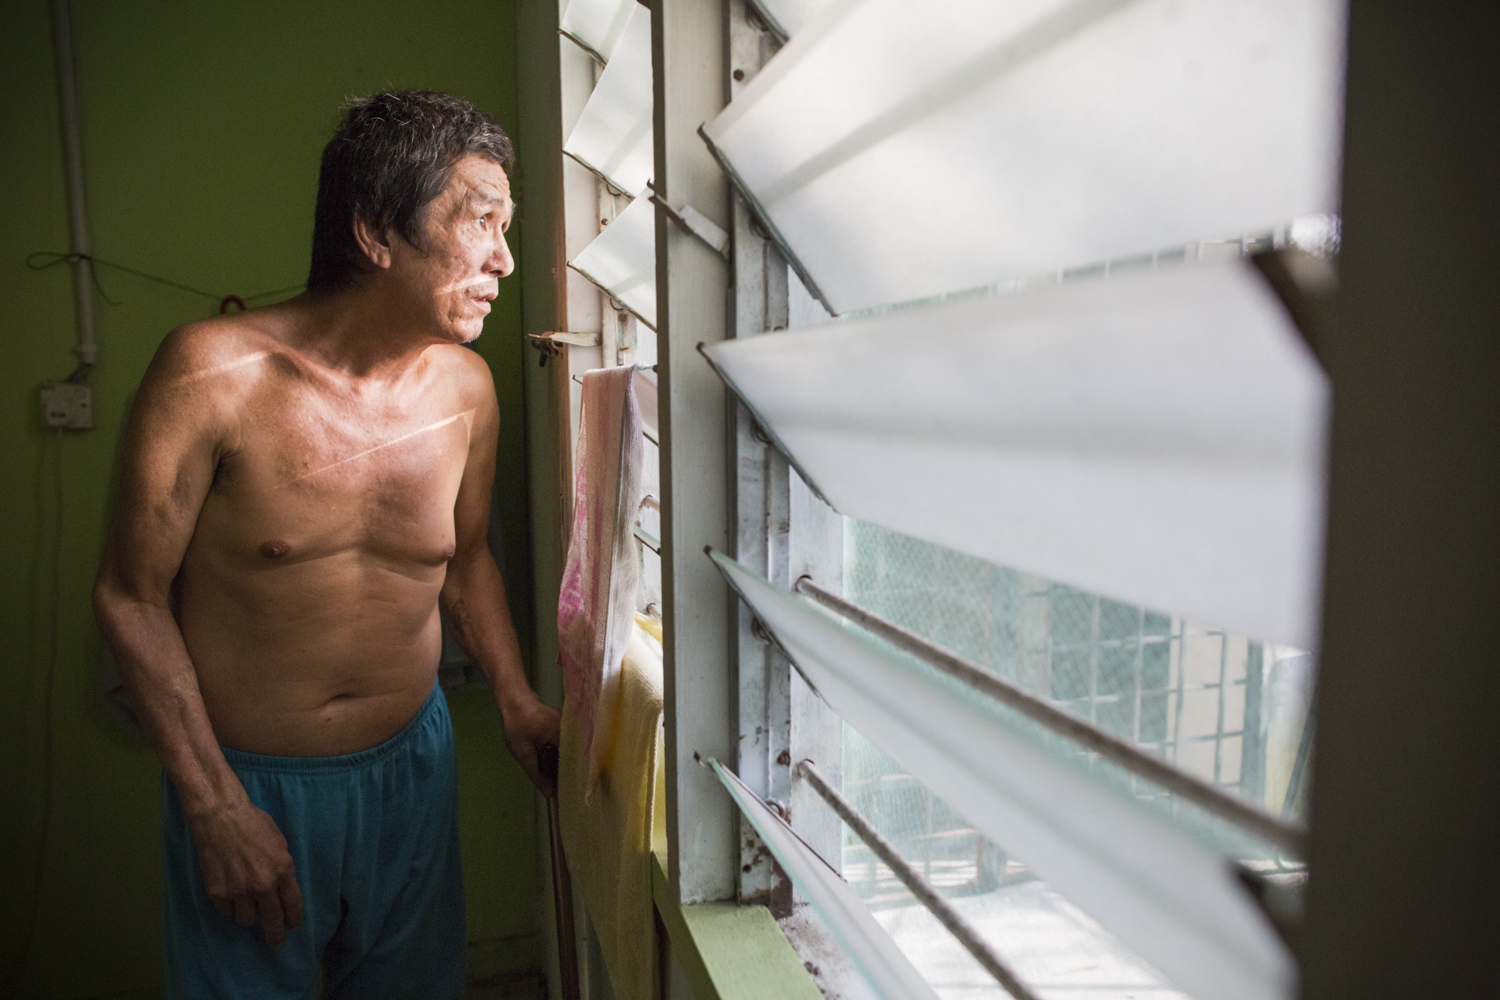 52 year-old Mr Guo has spent 5 years living at PLC. When he first learned that he contracted HIV, he left his wife and 7 year-old son to move elsewhere, fearing rejection from his family. It has been 12 years since he first left home, but he hasn't yet mustered the courage to face his family. He thinks of them often.